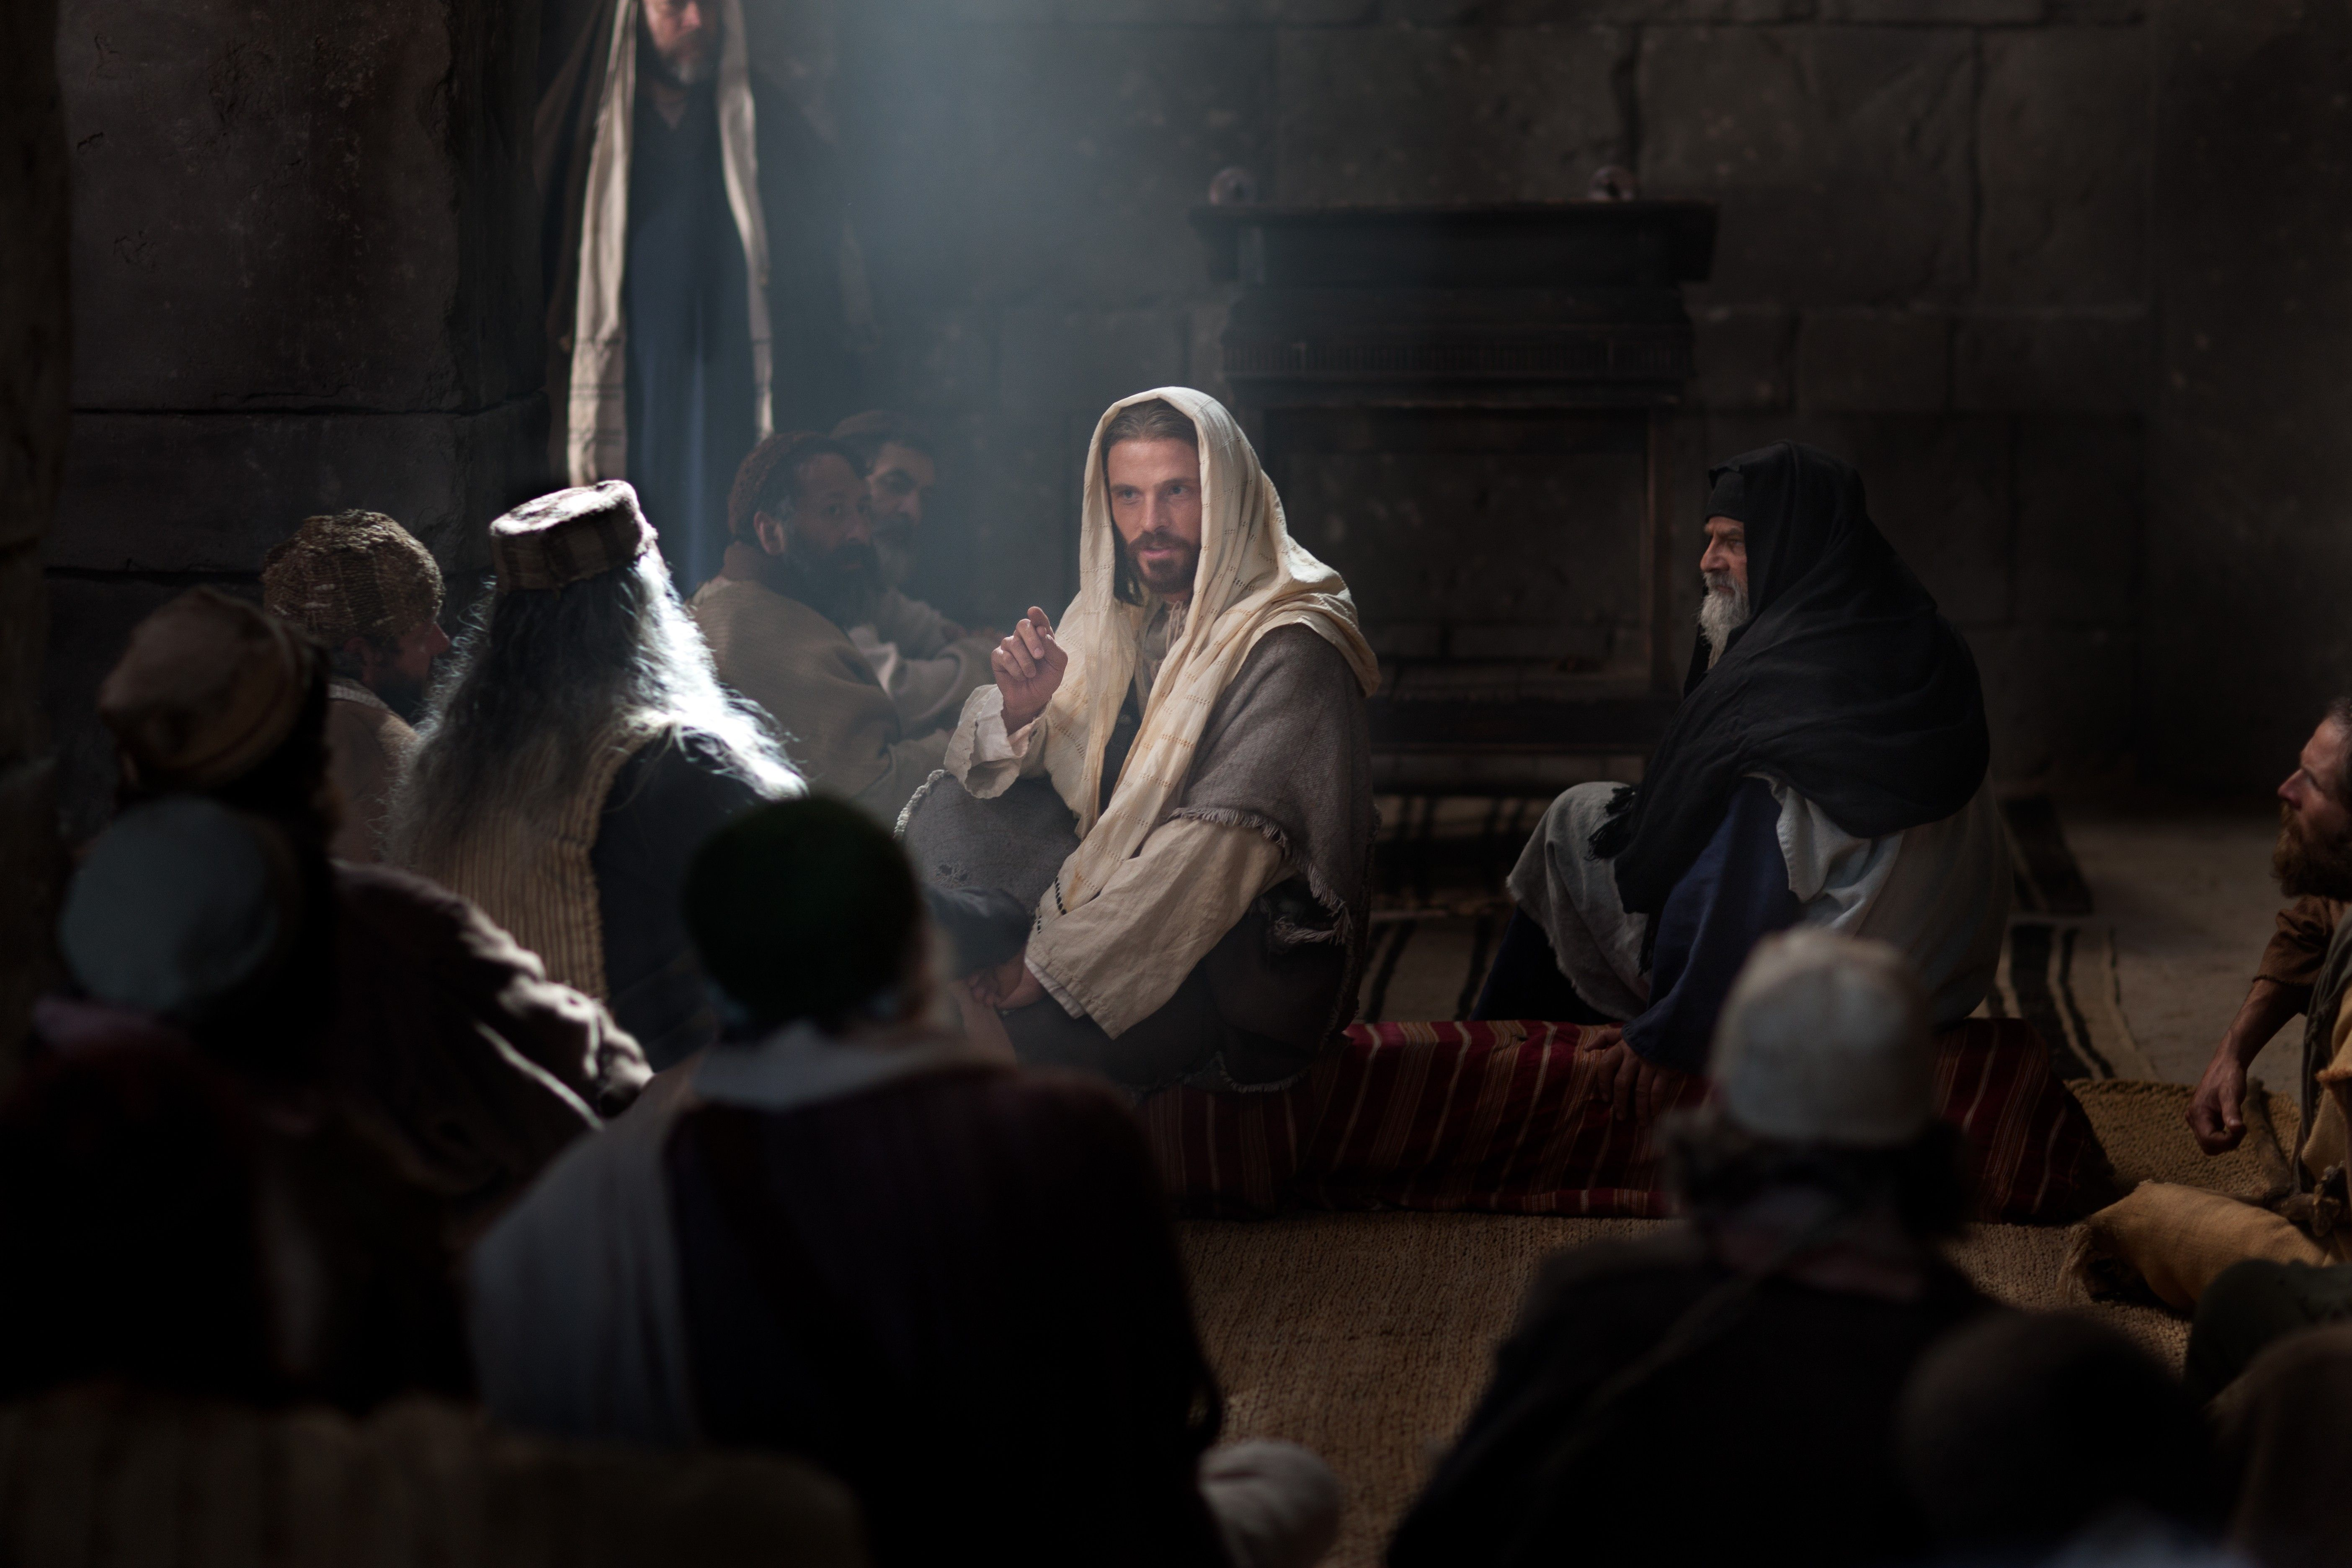 Jesus declares that He has fulfilled the prophecy of the Messiah.